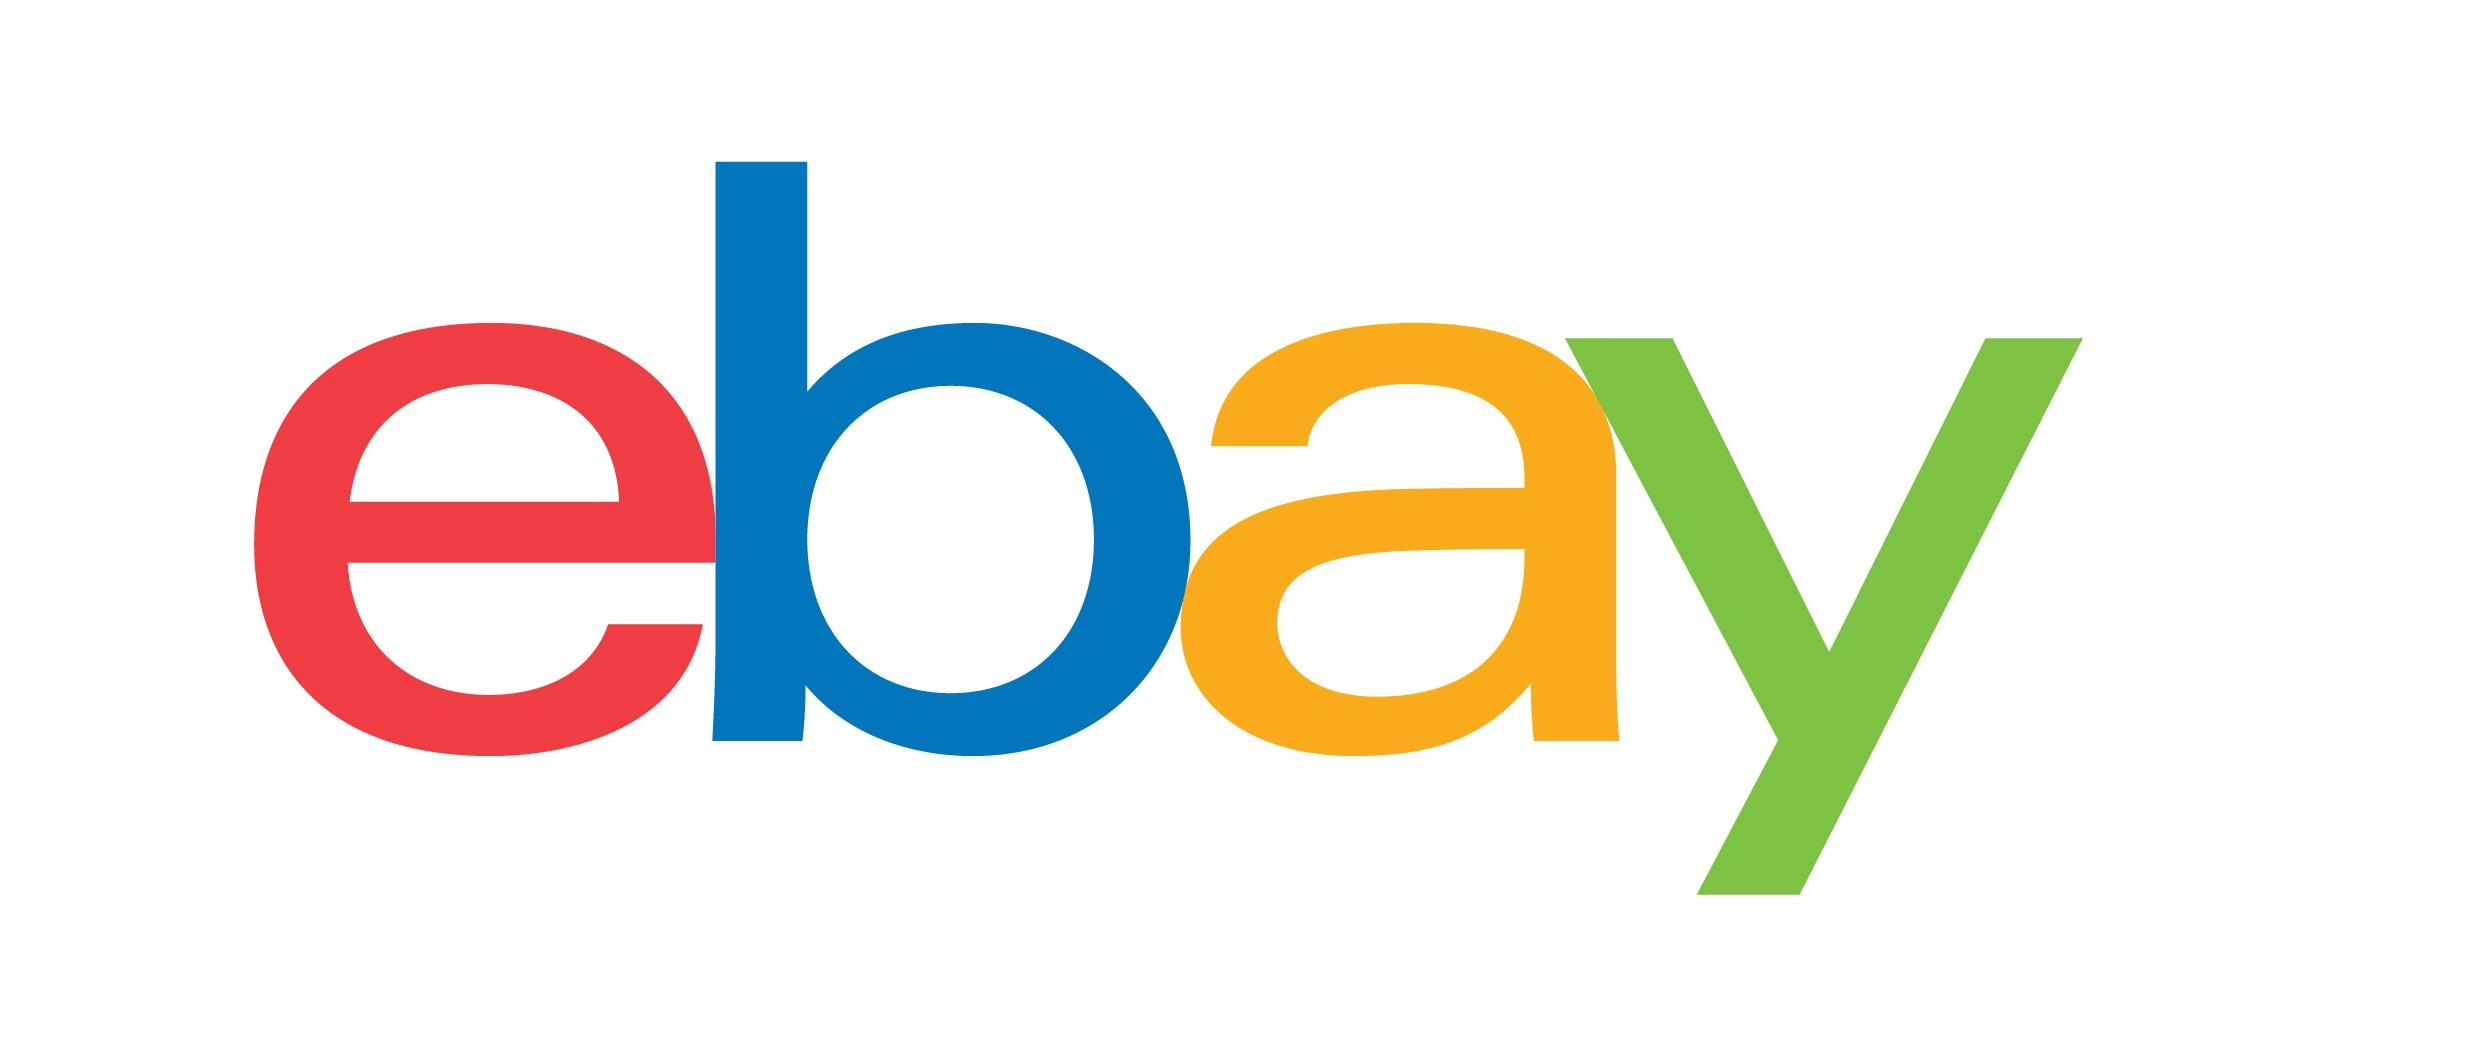 Adevinta To Acquire Ebay Classifieds Group To Create The World S Largest Online Classifieds Company